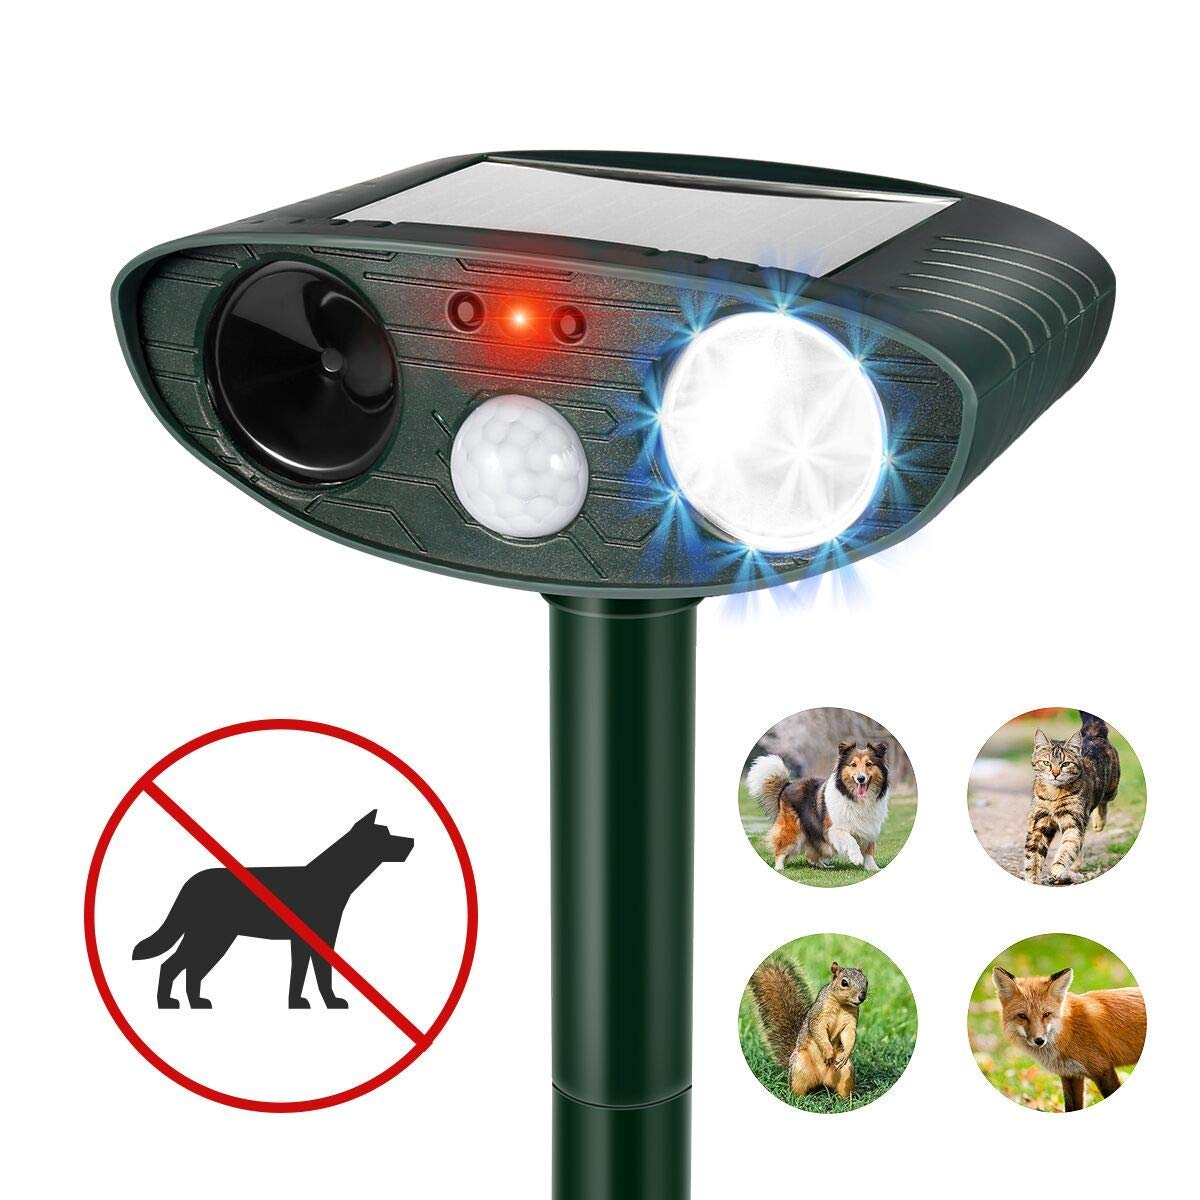 QKa Ultrasonic Dog Repellent, Solar Powered & Waterproof Pir Sensor Repeller for Cats, Dogs, Birds & Skunks & More Motion Activated LED Flashing Light by QKa